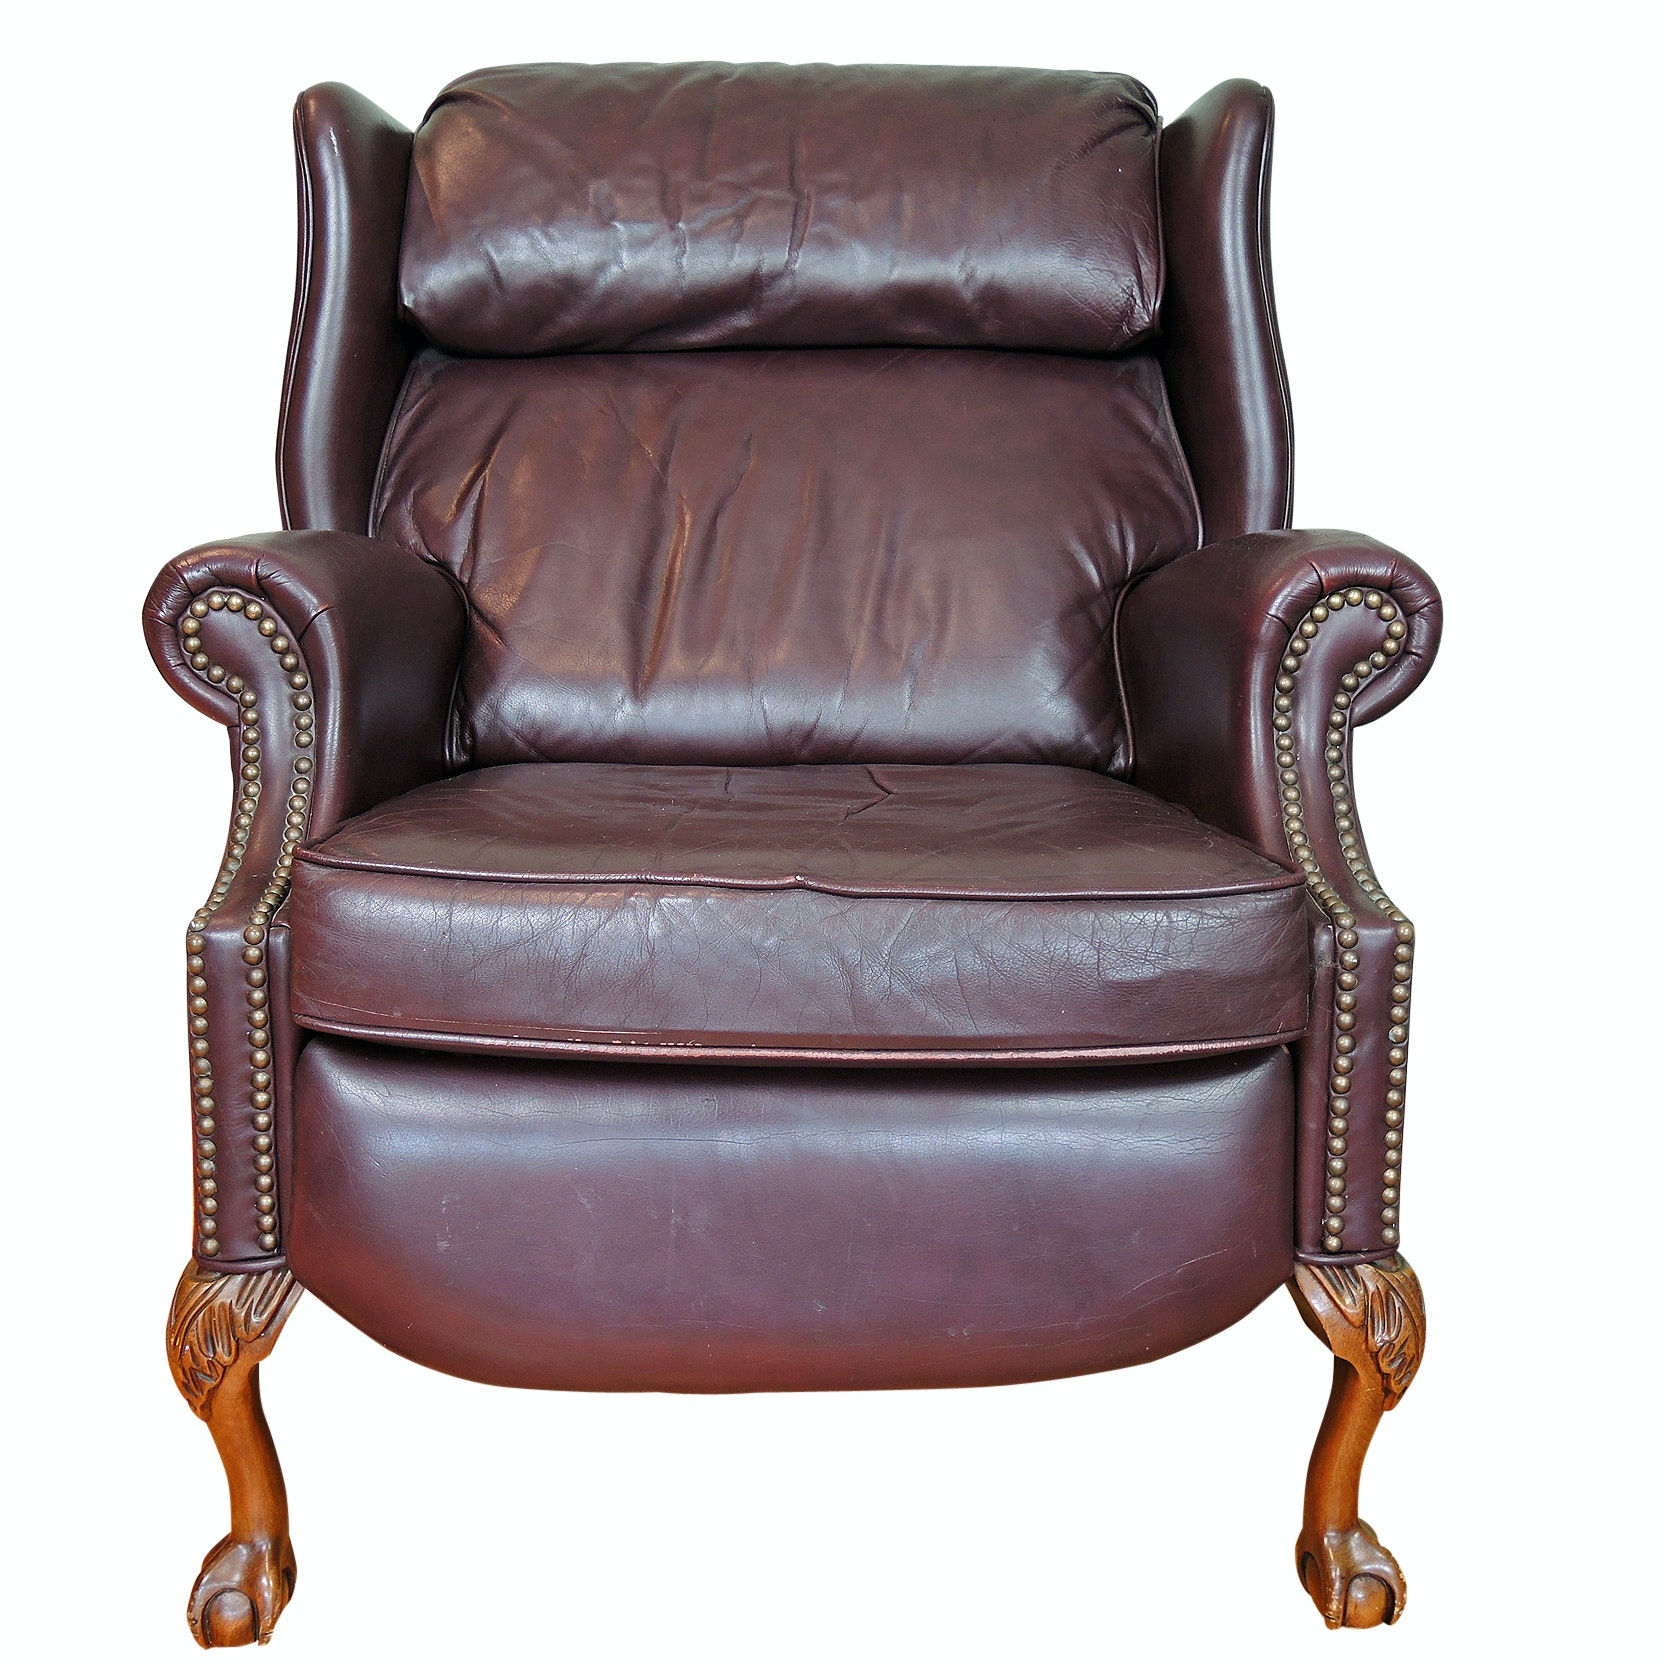 La-Z-Boy Leather Wingback Recliner